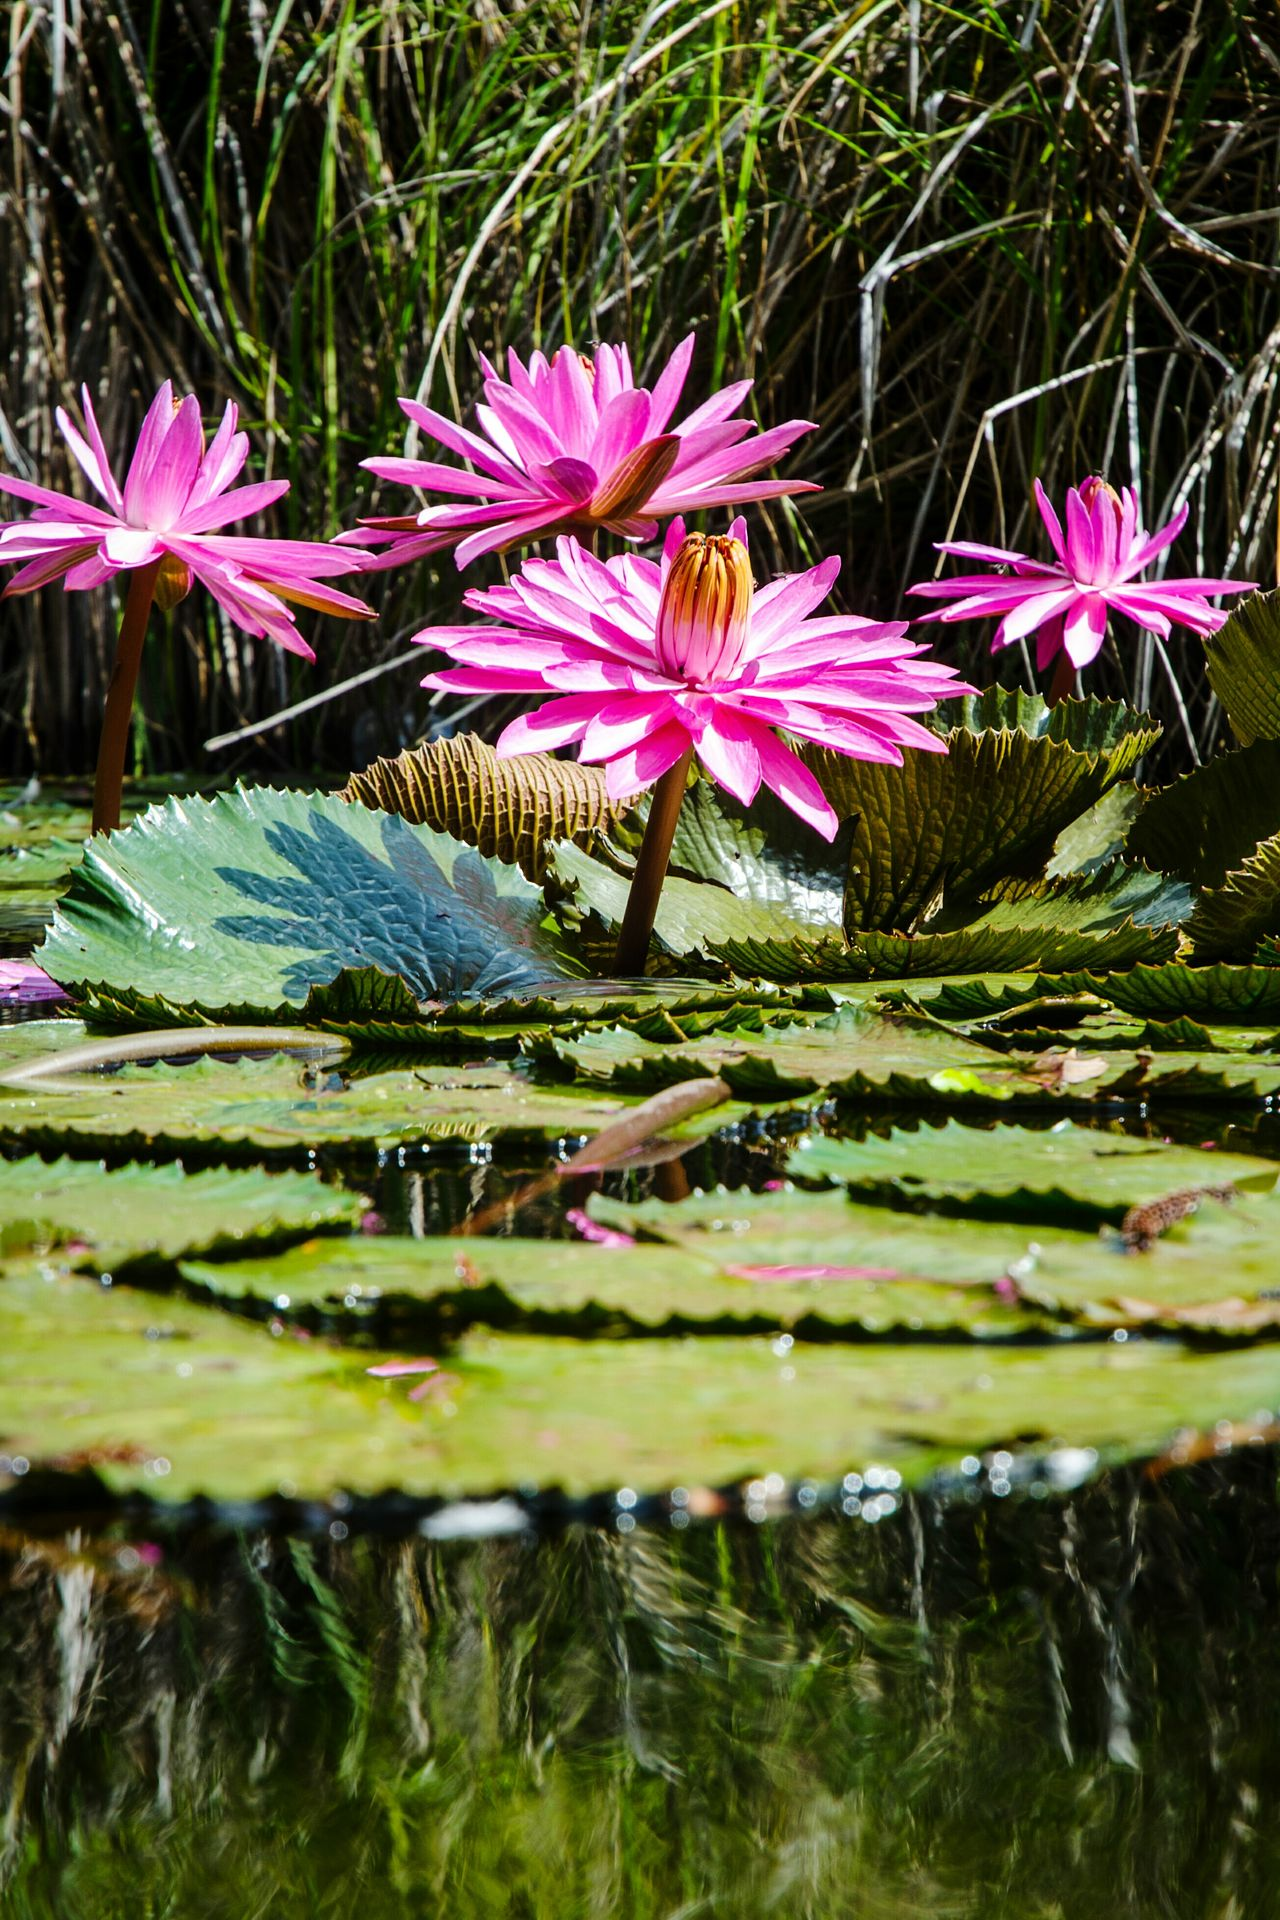 Water Flower Head Reflection Beauty In Nature Floating On Water Nature Outdoors EyeEm Flowers Collection Water Lilies Lilly Pads Nikon D5100